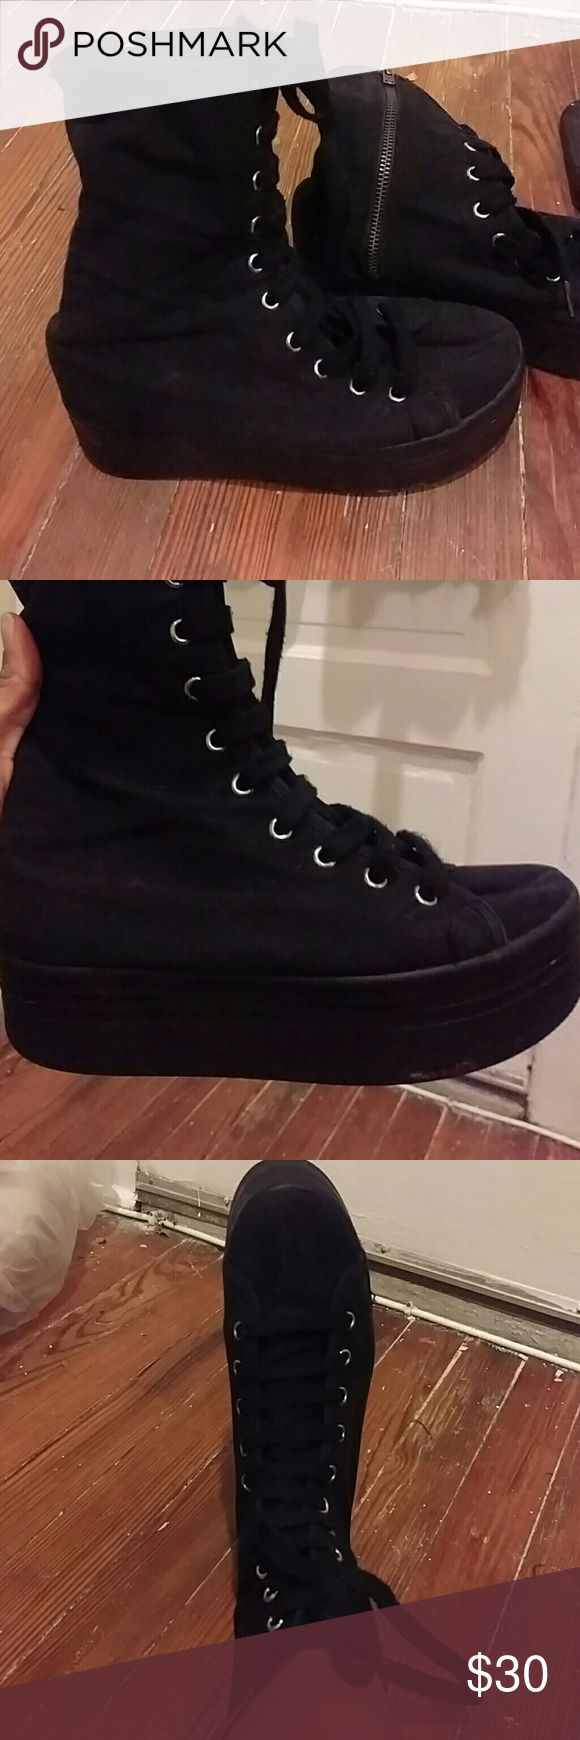 Creeper boots Ankle creeper boots. I'm not sure the brand but put H&M for more exposure. MAKE AN OFFER? H&M Shoes Ankle Boots & Booties